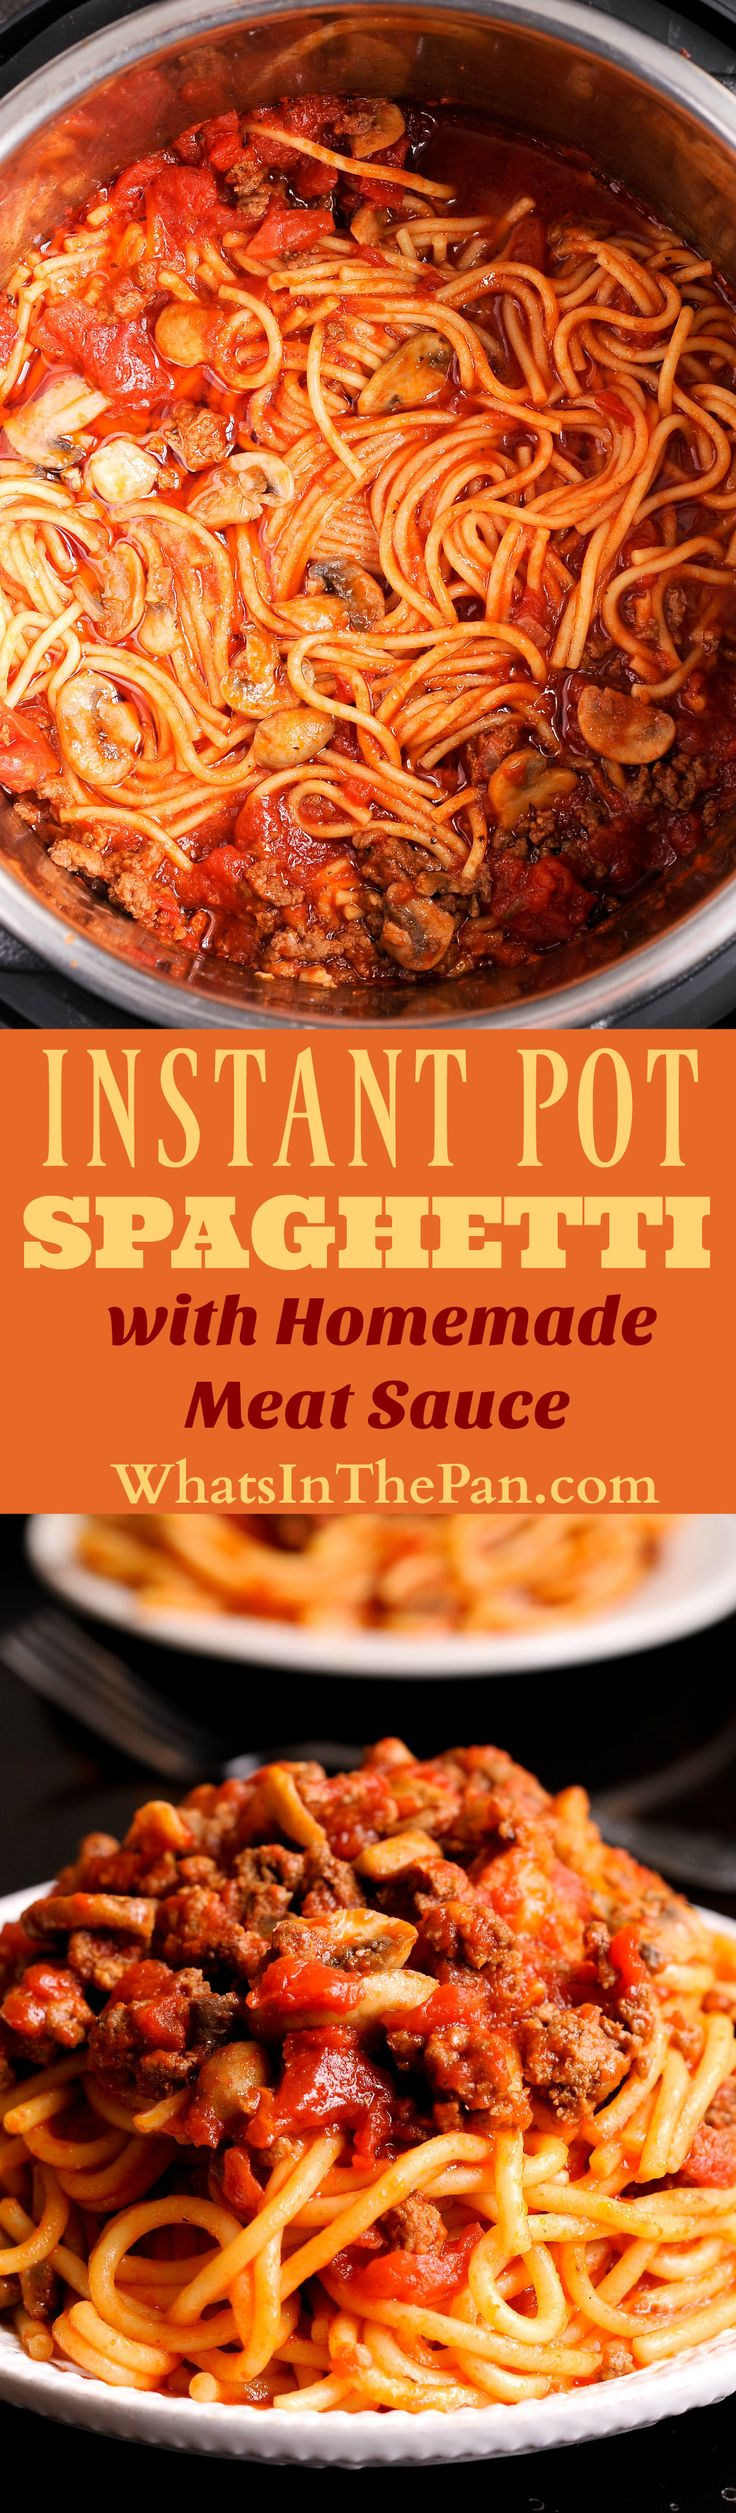 Instant Pot Spaghetti with Meat Sauce recipe with the homemade meat sauce is an easy and balanced meal that your family will love! Detailed instructions on how to use your Instant Pot in this recipe are included. #instantpot #dinner #onepot #easydinner #spaghetti